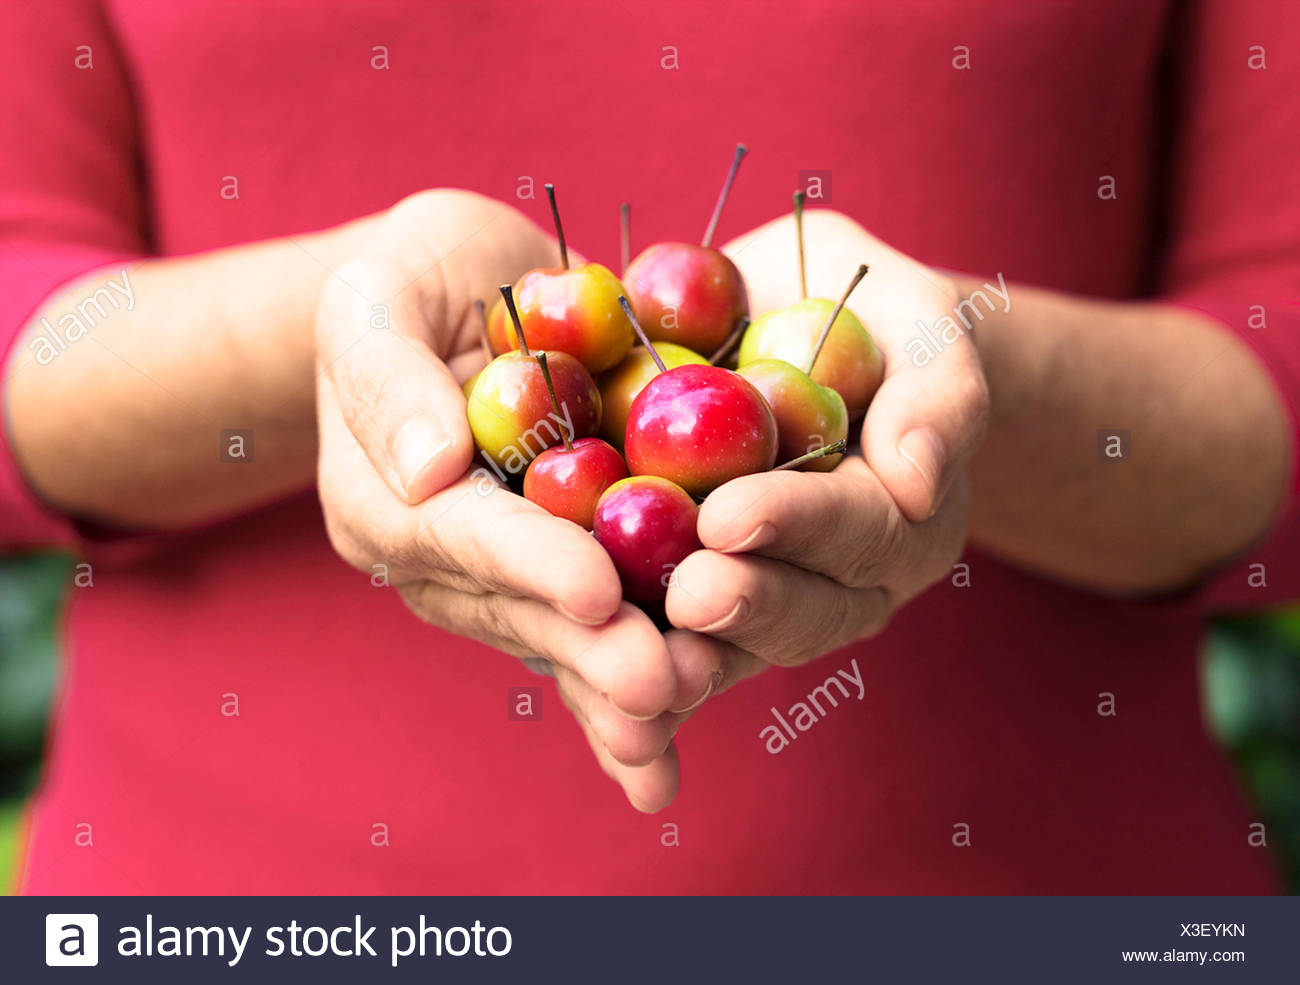 Small red apples - Stock Image